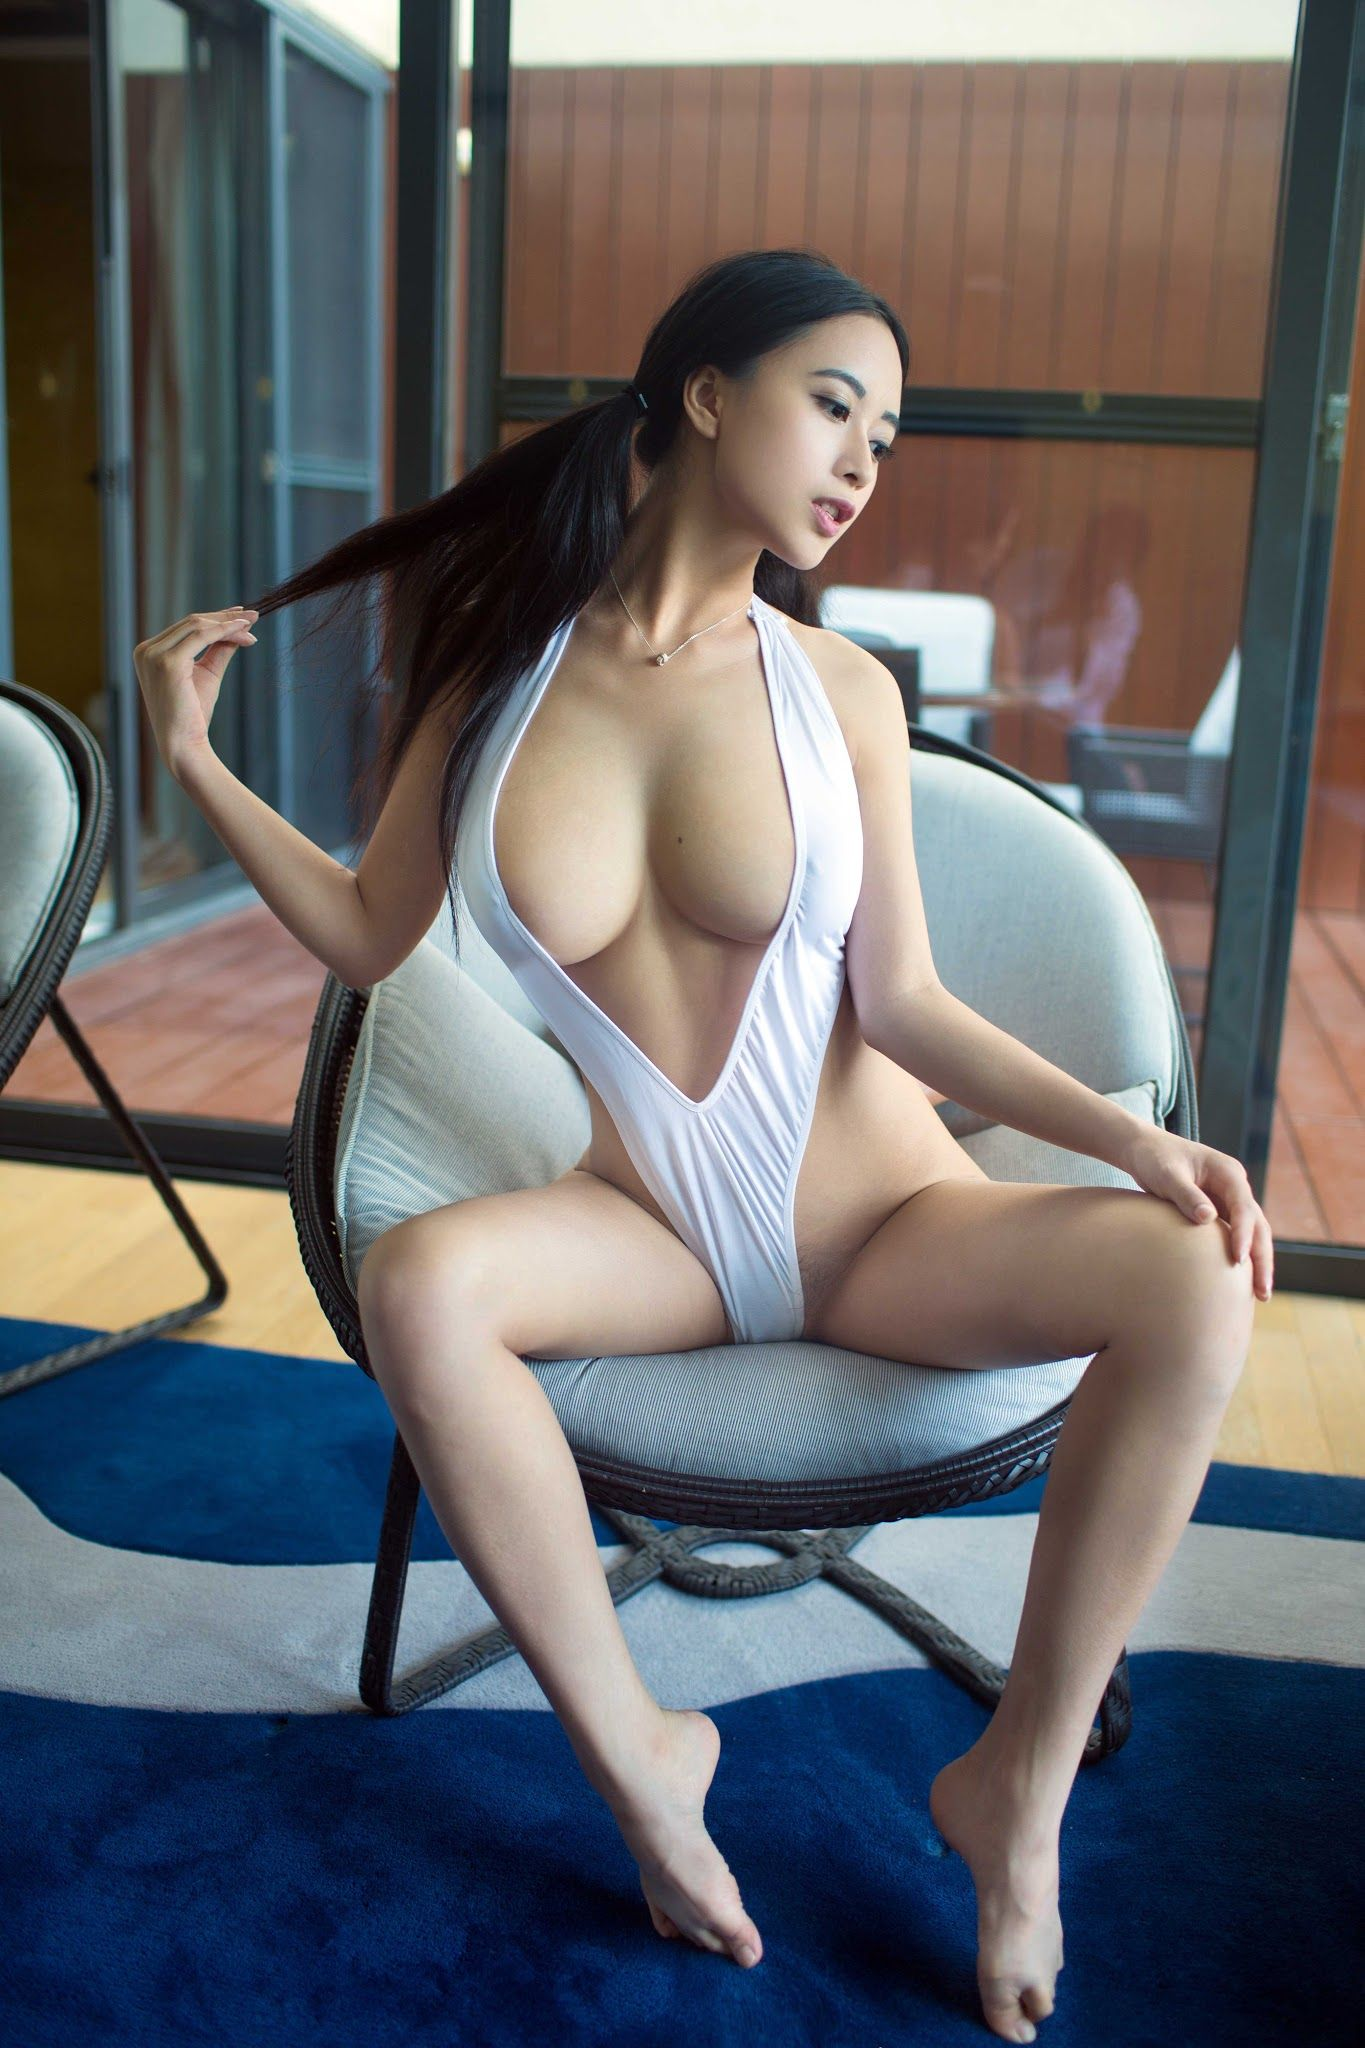 and-naked-sexy-picture-taiwan-girl-pictures-female